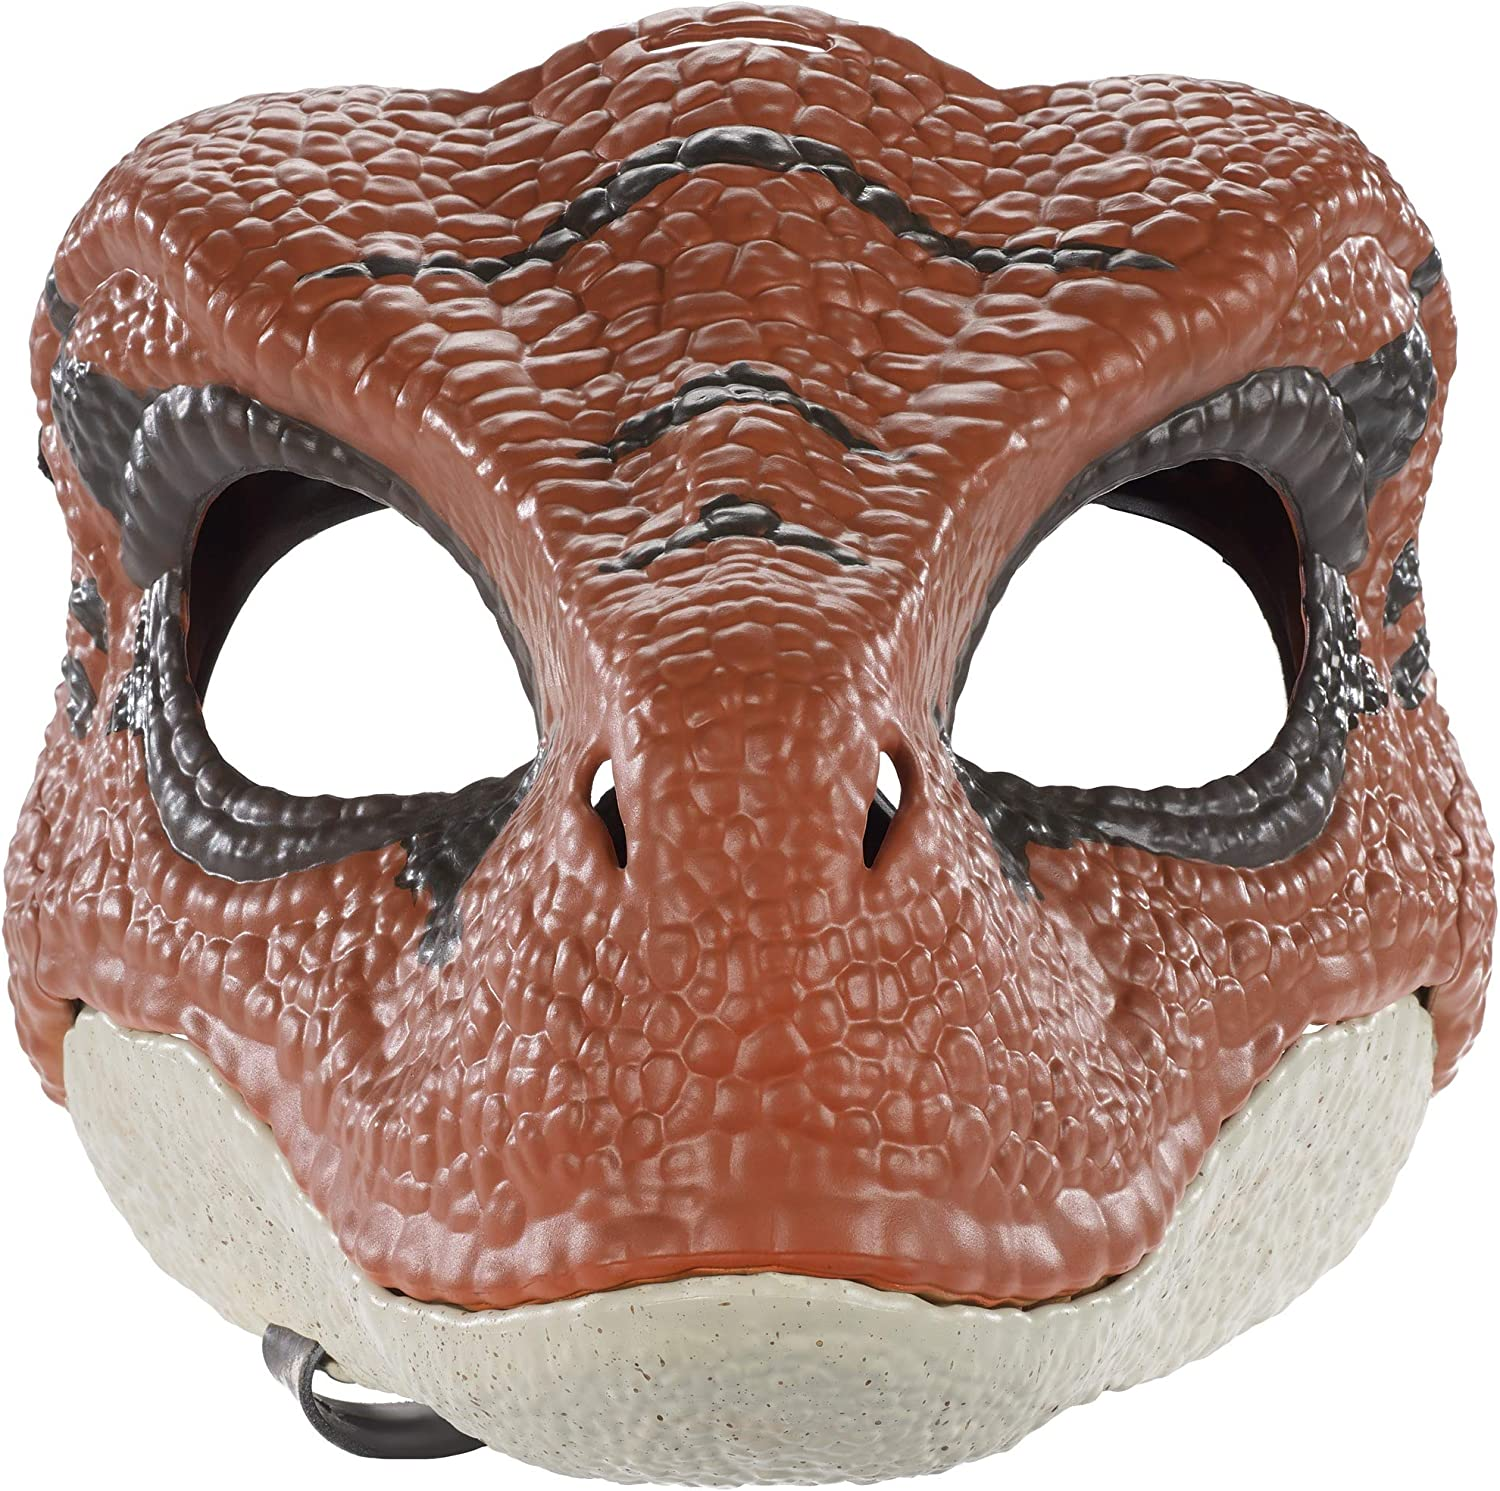 Jurassic World Movie-Inspired Velociraptor Mask with Opening Jaw, Realistic Texture and Color, Eye and Nose Openings and Secure Strap; Ages 4 and Up